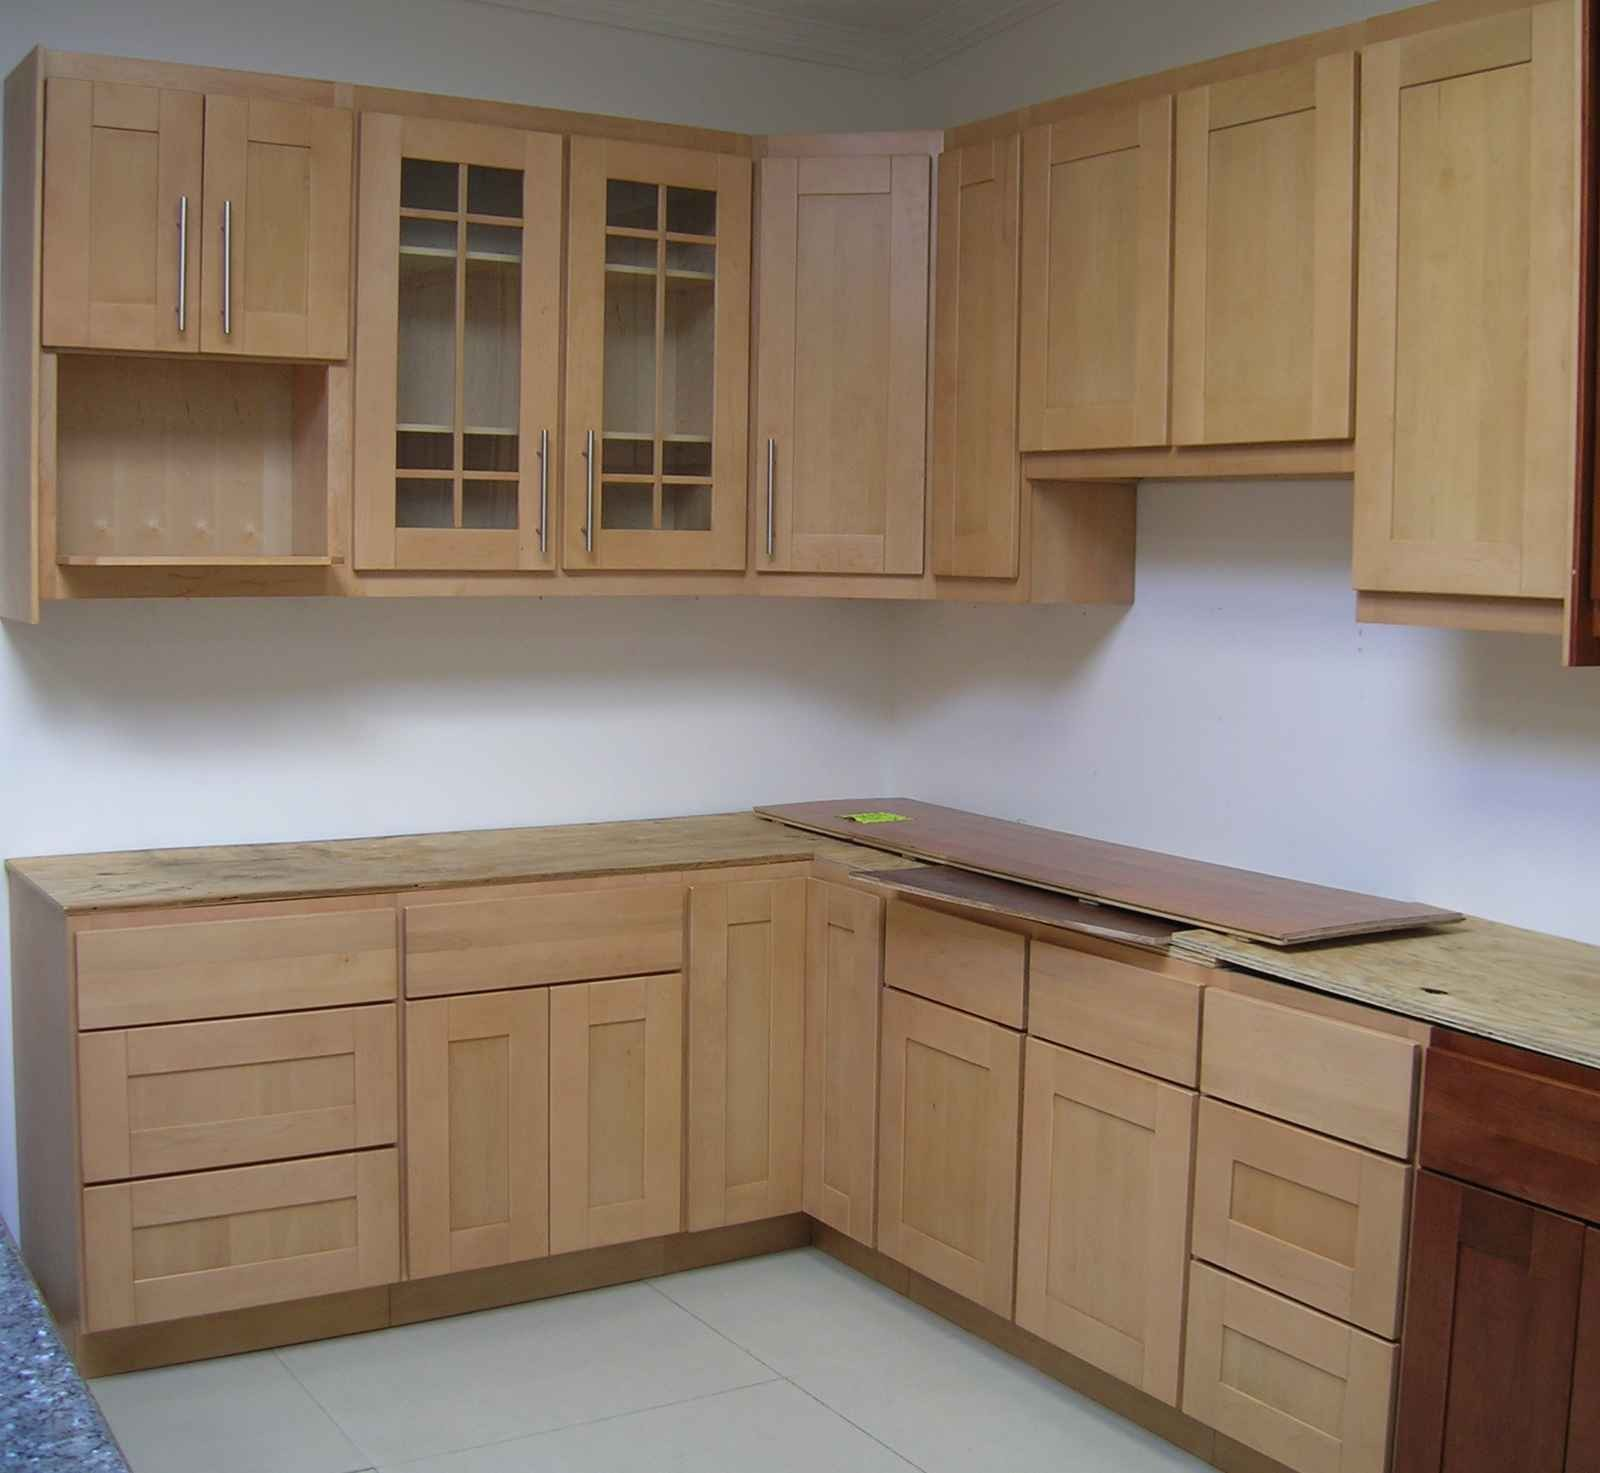 Epic Wholesale Unfinished Kitchen Cabinets 22 For Kitchen Interior Design with Wholesale Unfinished Kitchen Cabinets